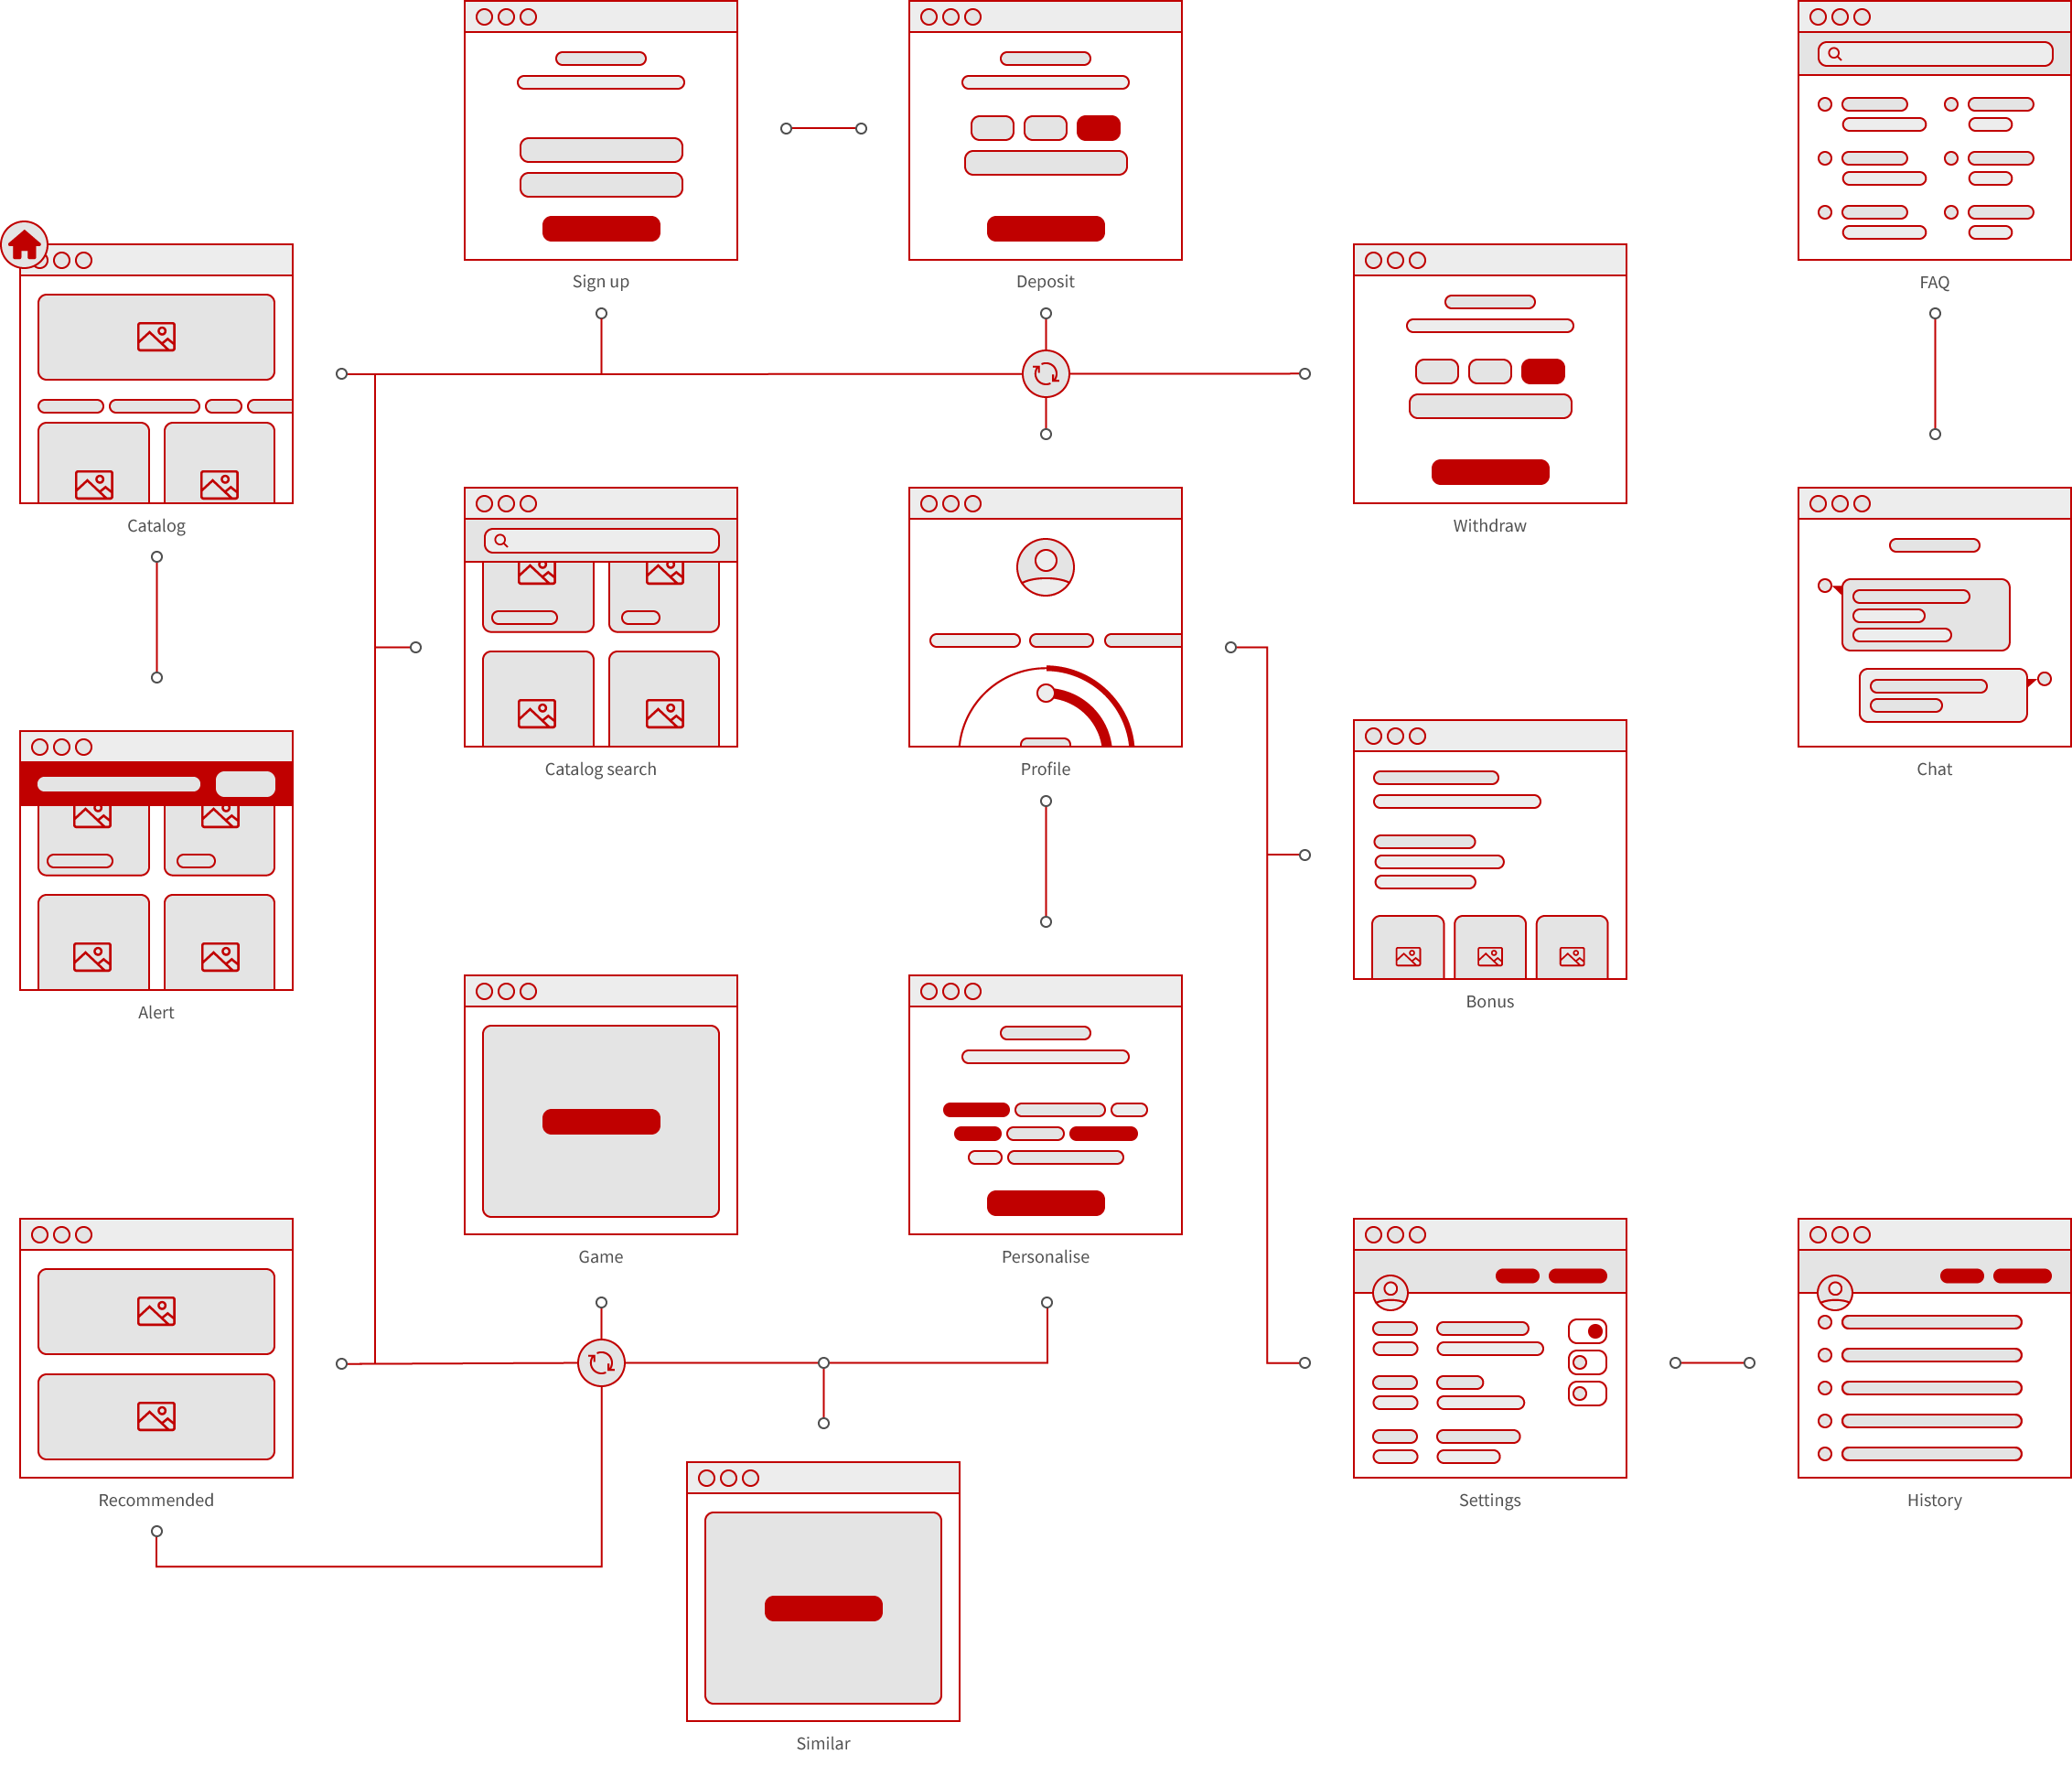 website build - sitemap and user journey map